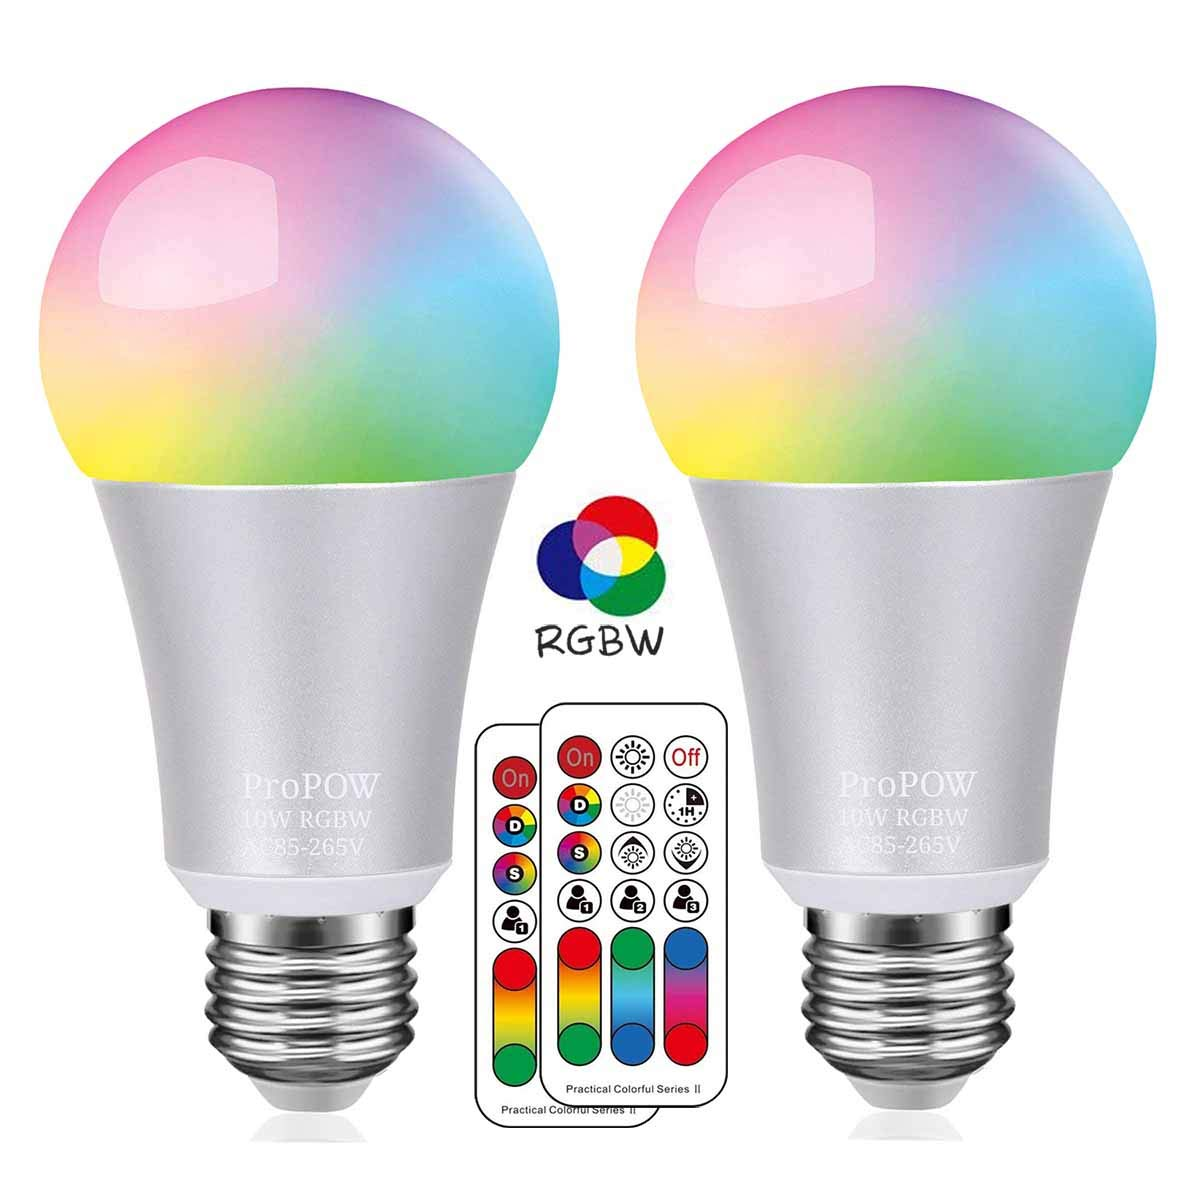 Color LED Light Bulb, ProPOW 10W RGBW Color Changing Light Bulbs with IR Remote Control A19 E26 LED Night Light Bulbs Mood Light Bulb for Home Decor, Party(RGB+Soft White, Dimmable, 2-Pack)